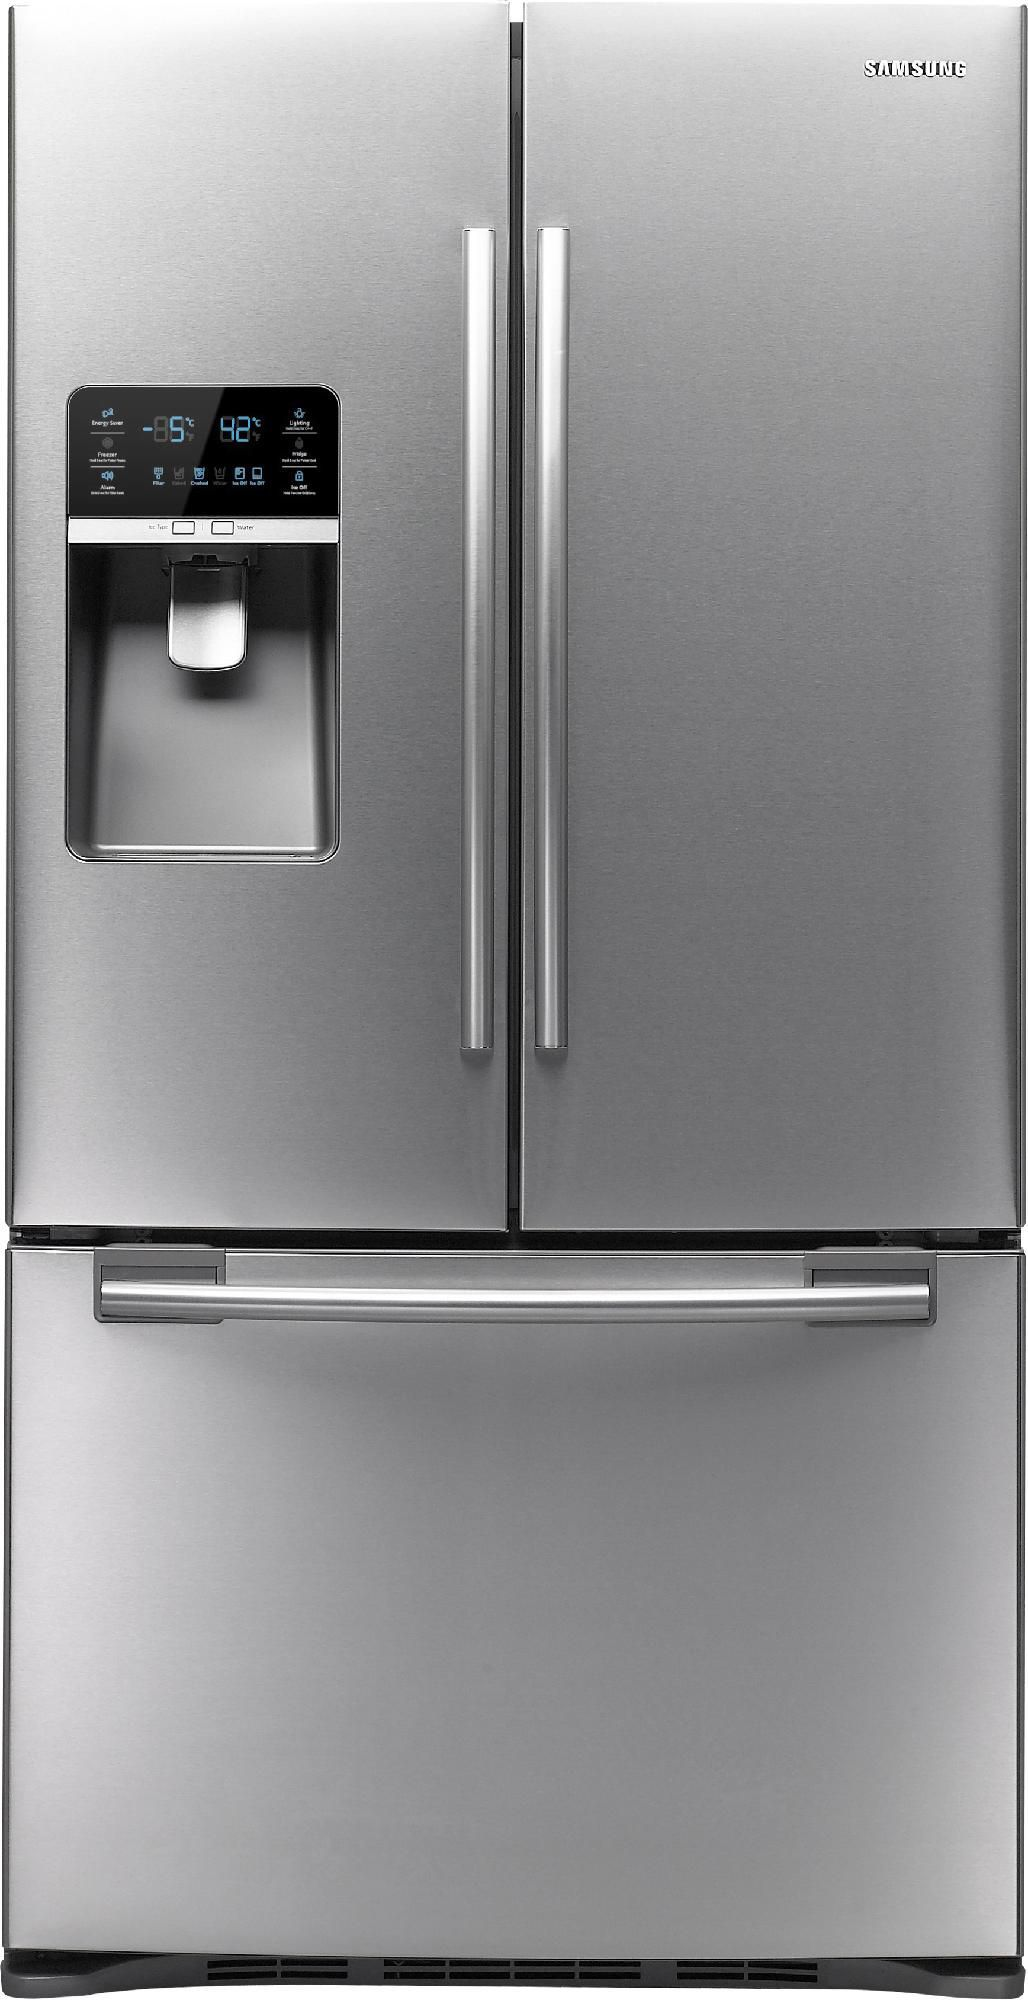 French Door Refrigerator By Samsung Appliances Has A Whole Slew Of  Features.even An In Door Pizza Pocket To Store Your Frozen Pizzas!